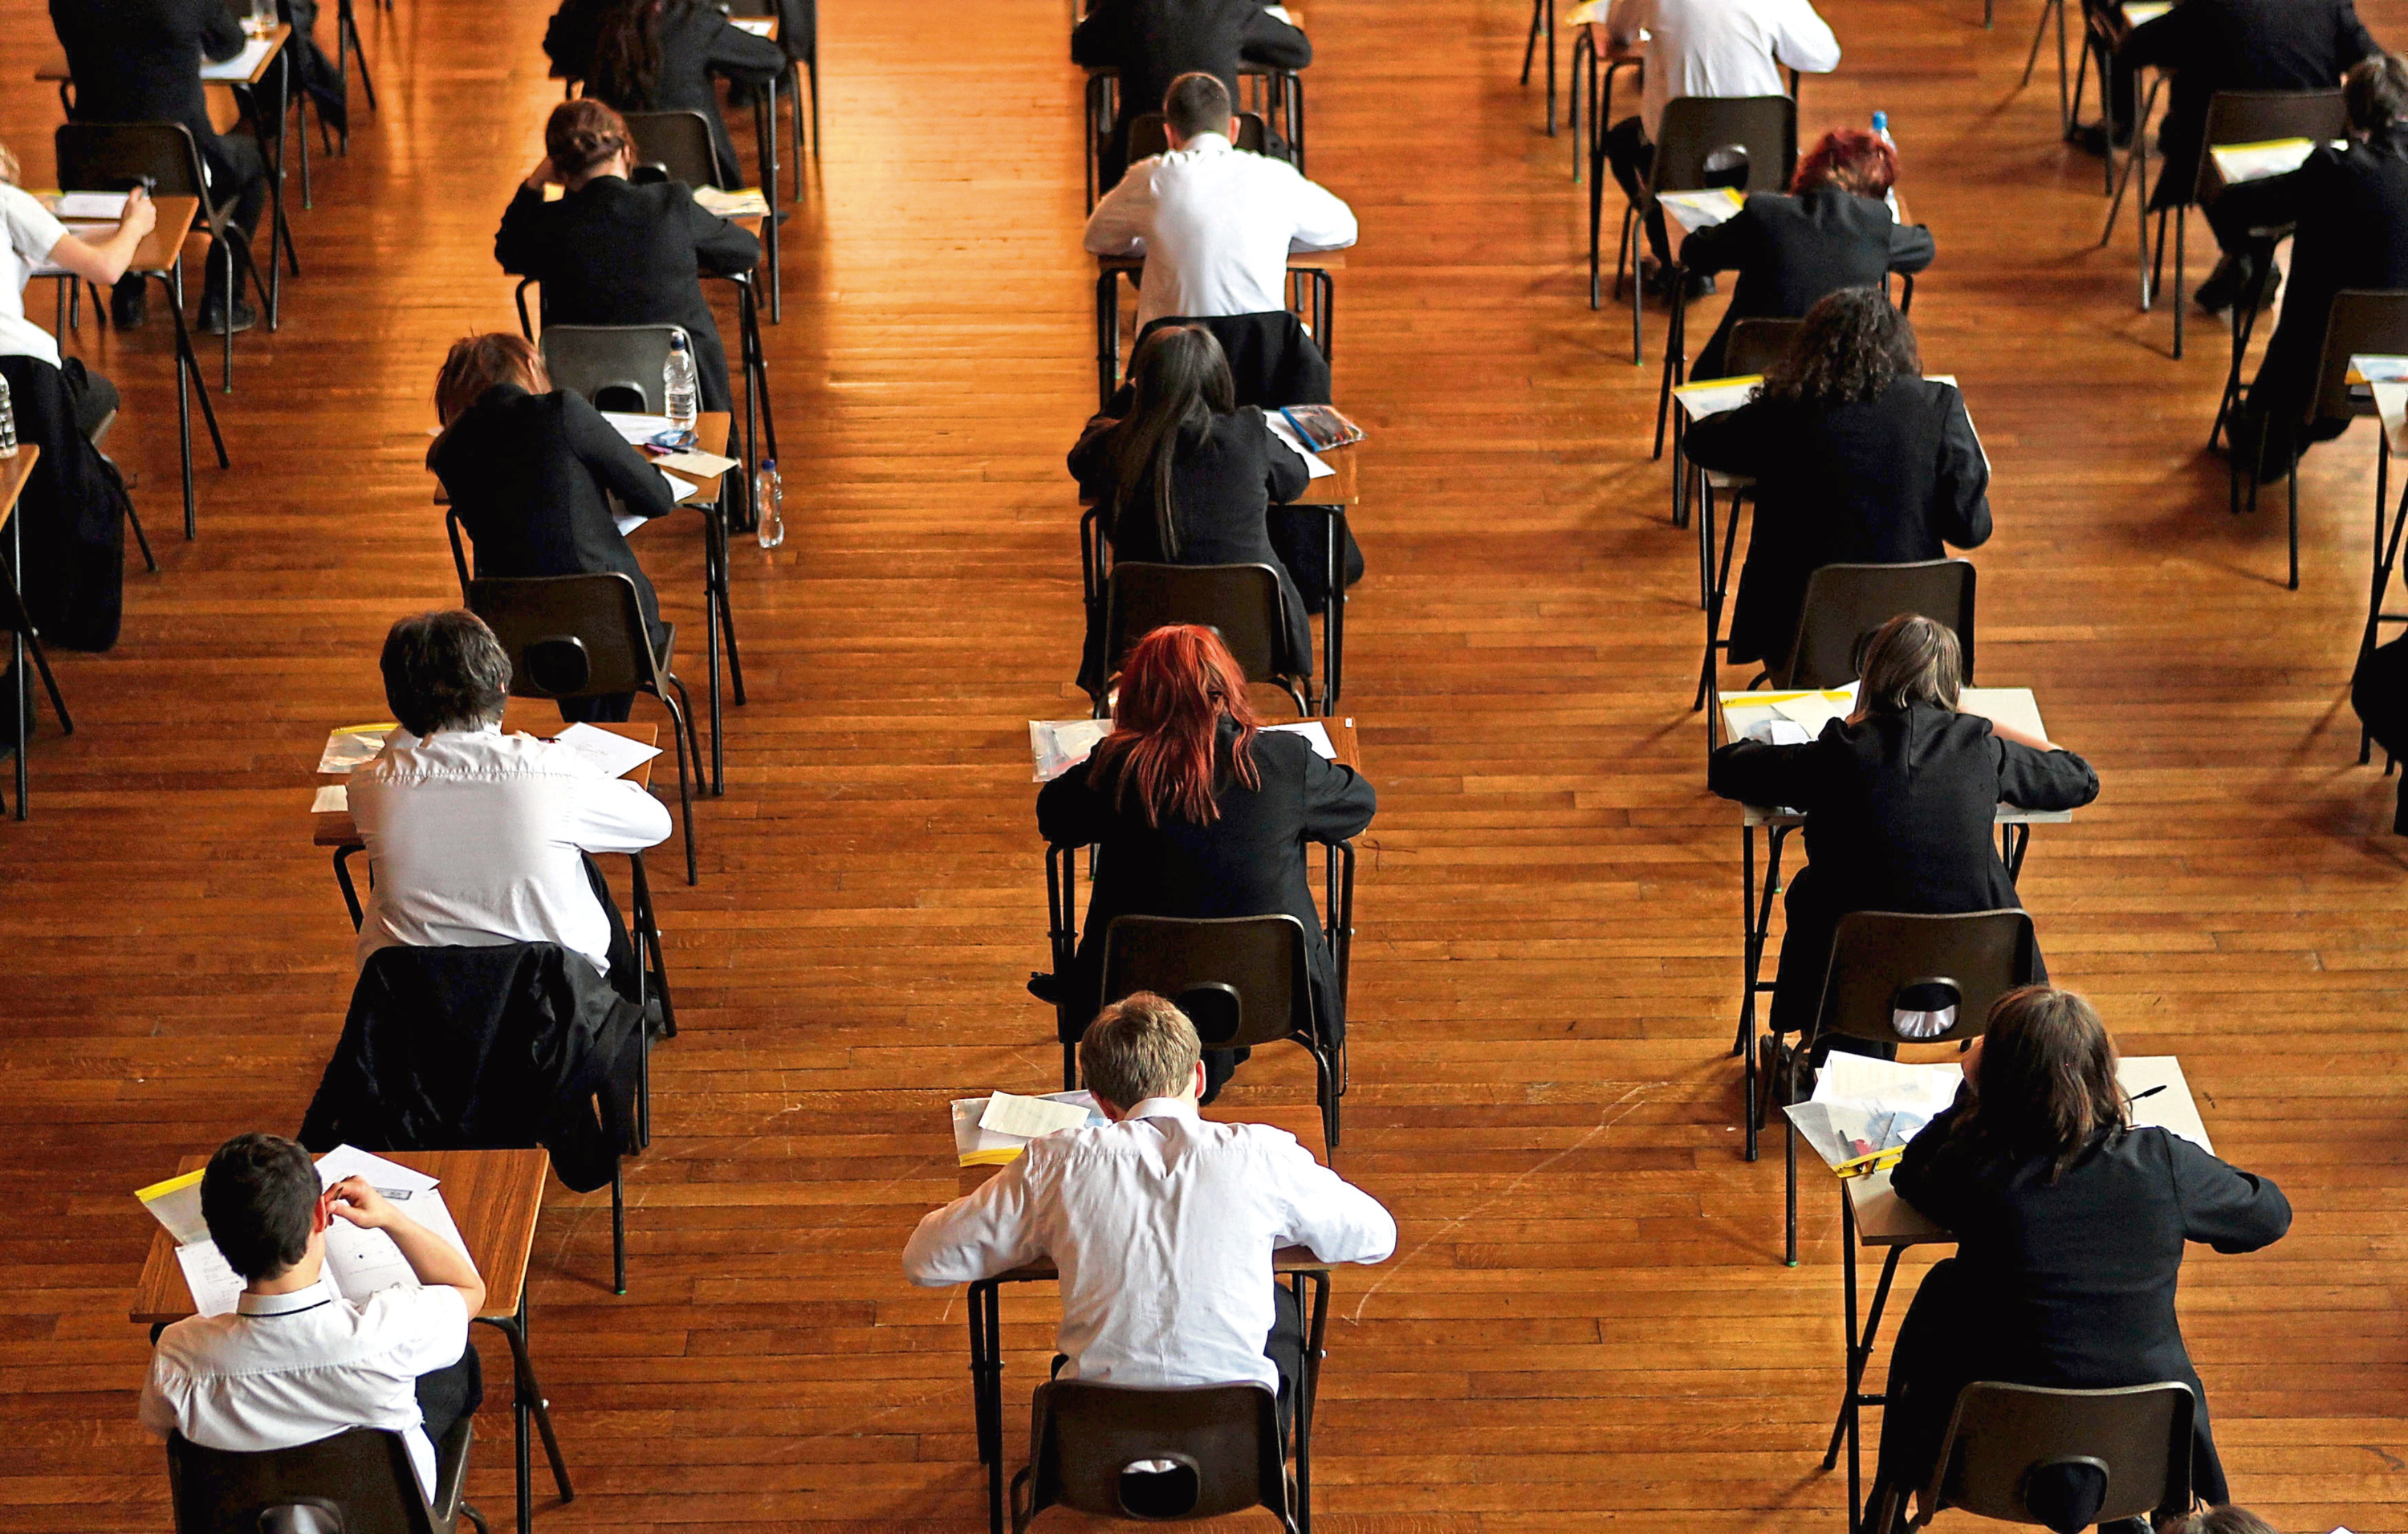 The council hopes to improve the overall performance of Dundee's poorest schoolchildren.